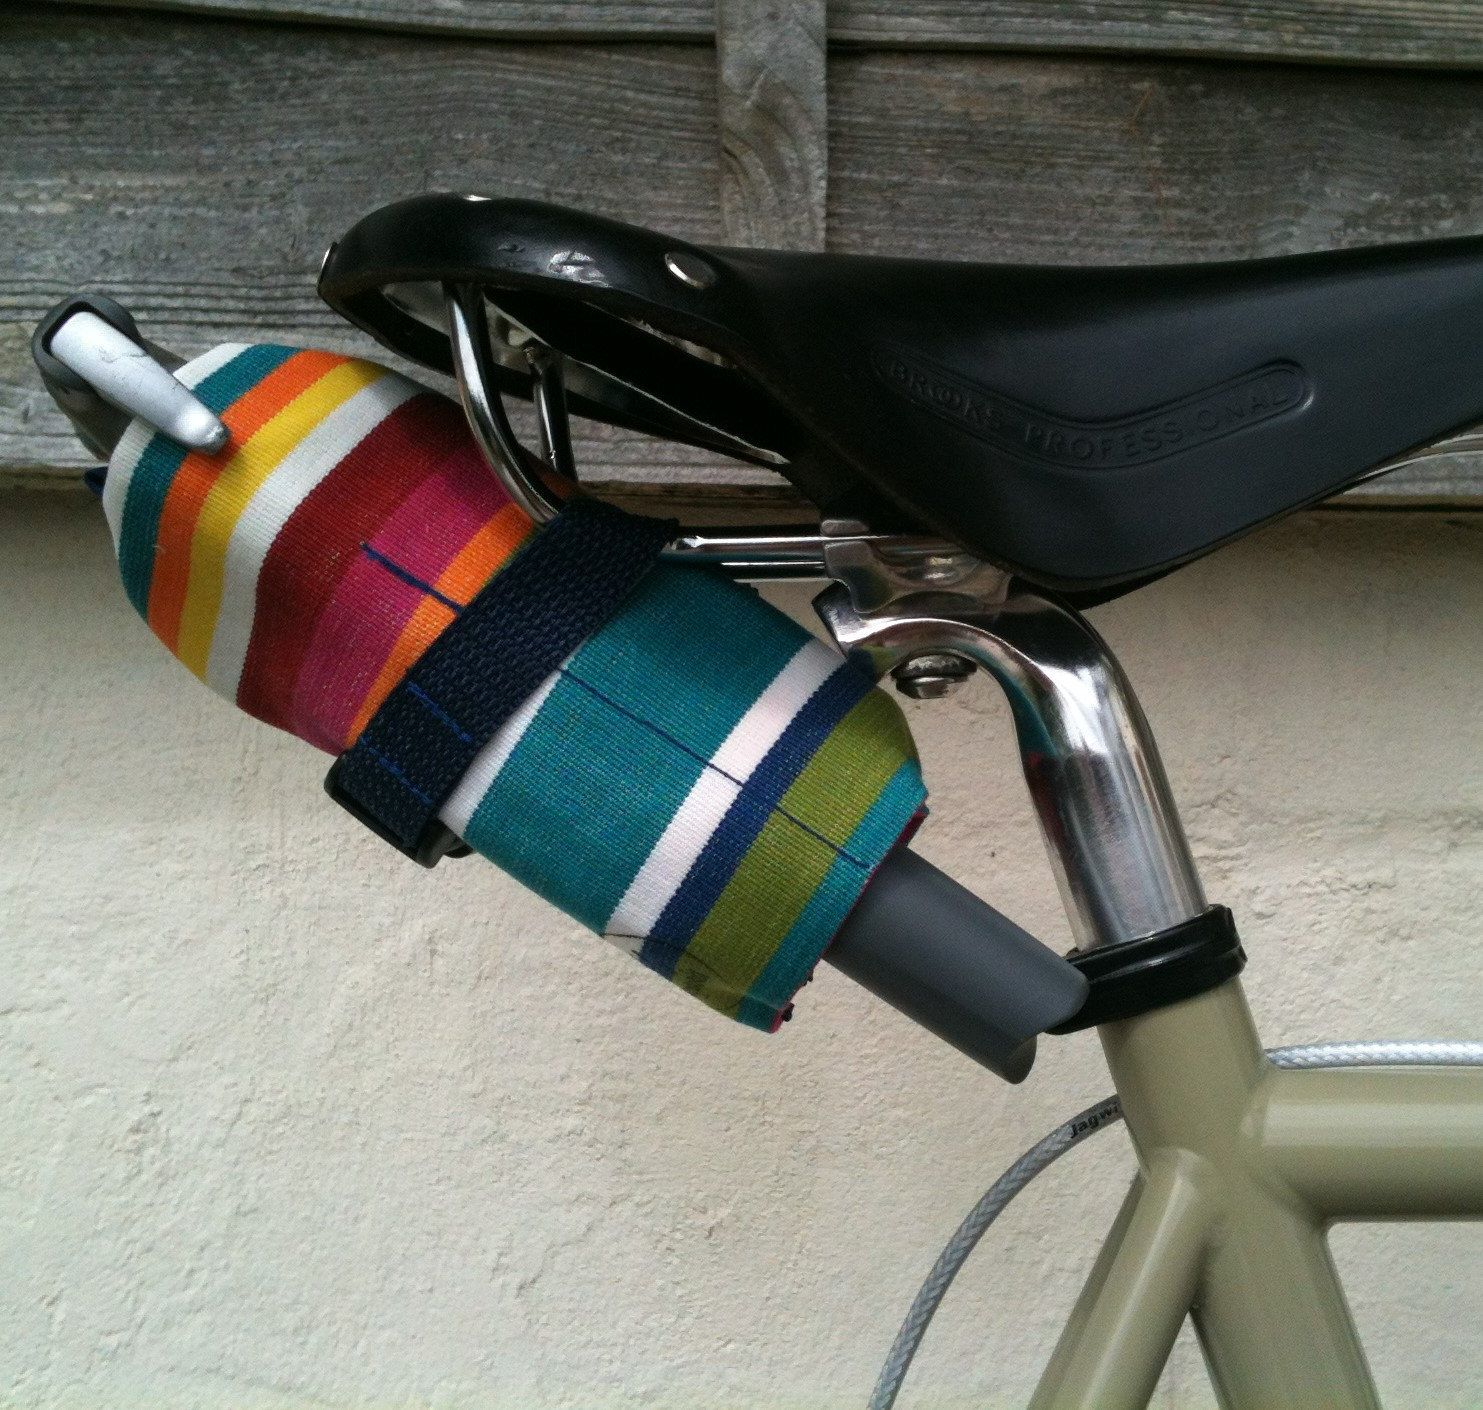 Waxed Canvas Bicycle Tool Roll Saddle Bag Accessory And Pouch Multicoloured Stripes